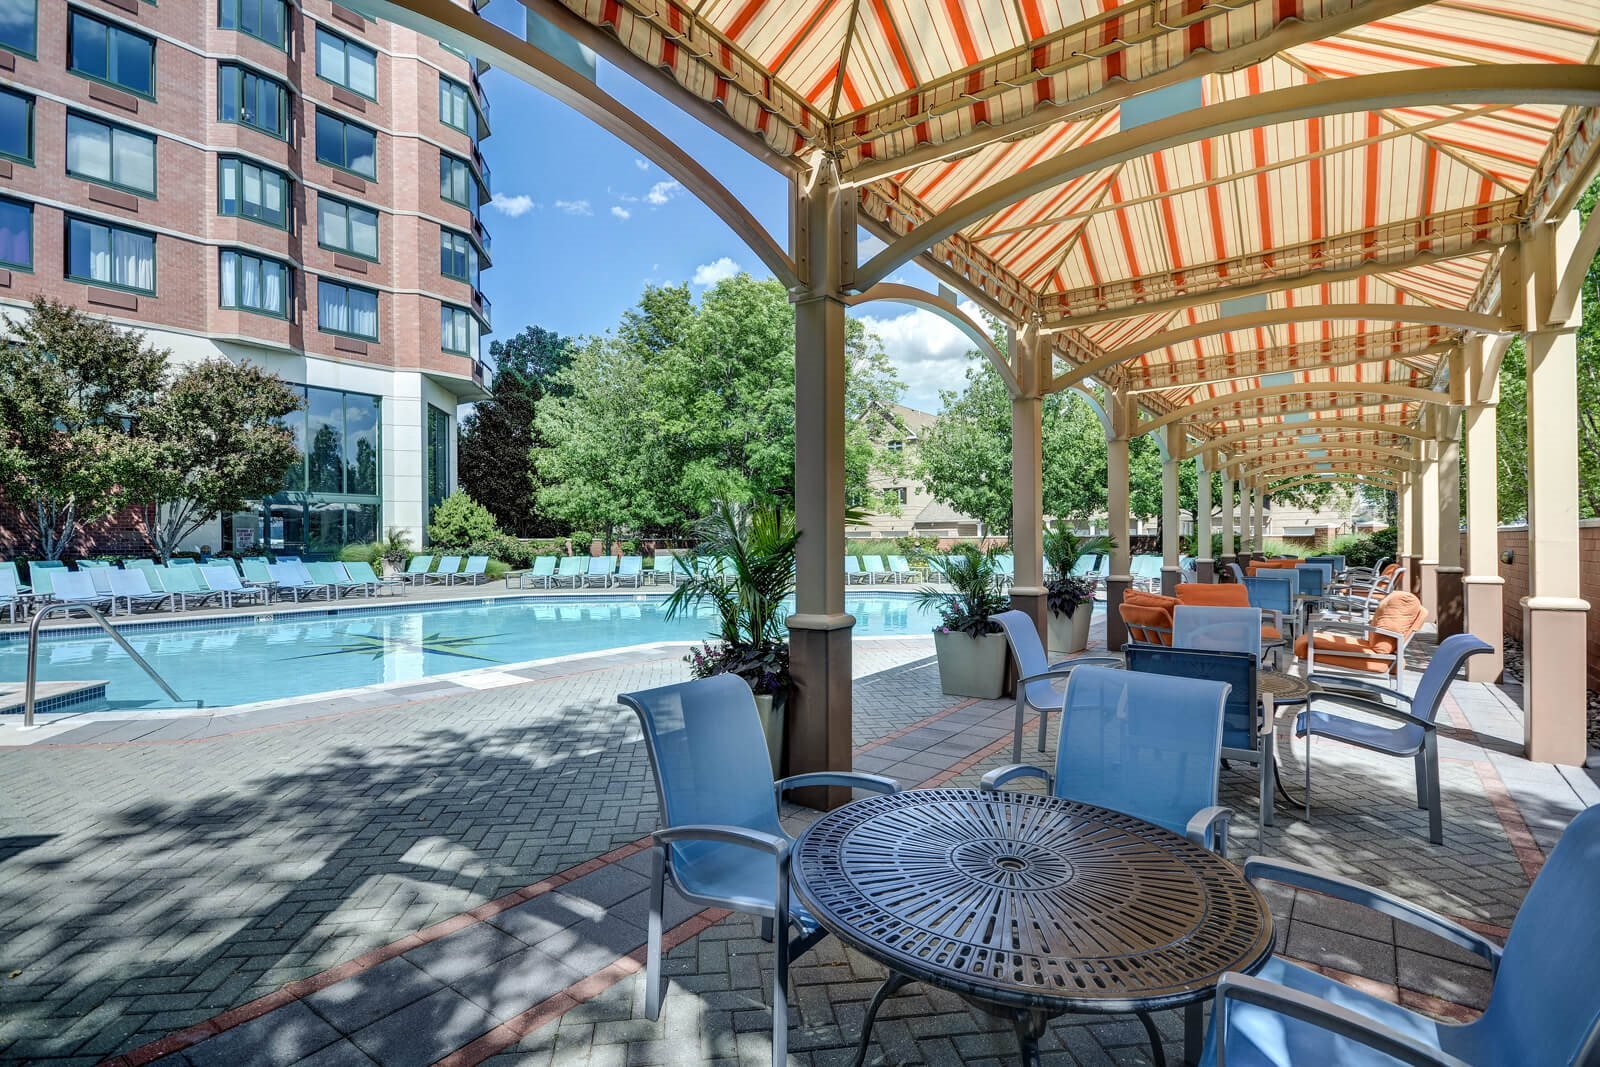 Poolside Sundeck with Shaded Lounge Area at Windsor at Mariners, 07020, NJ